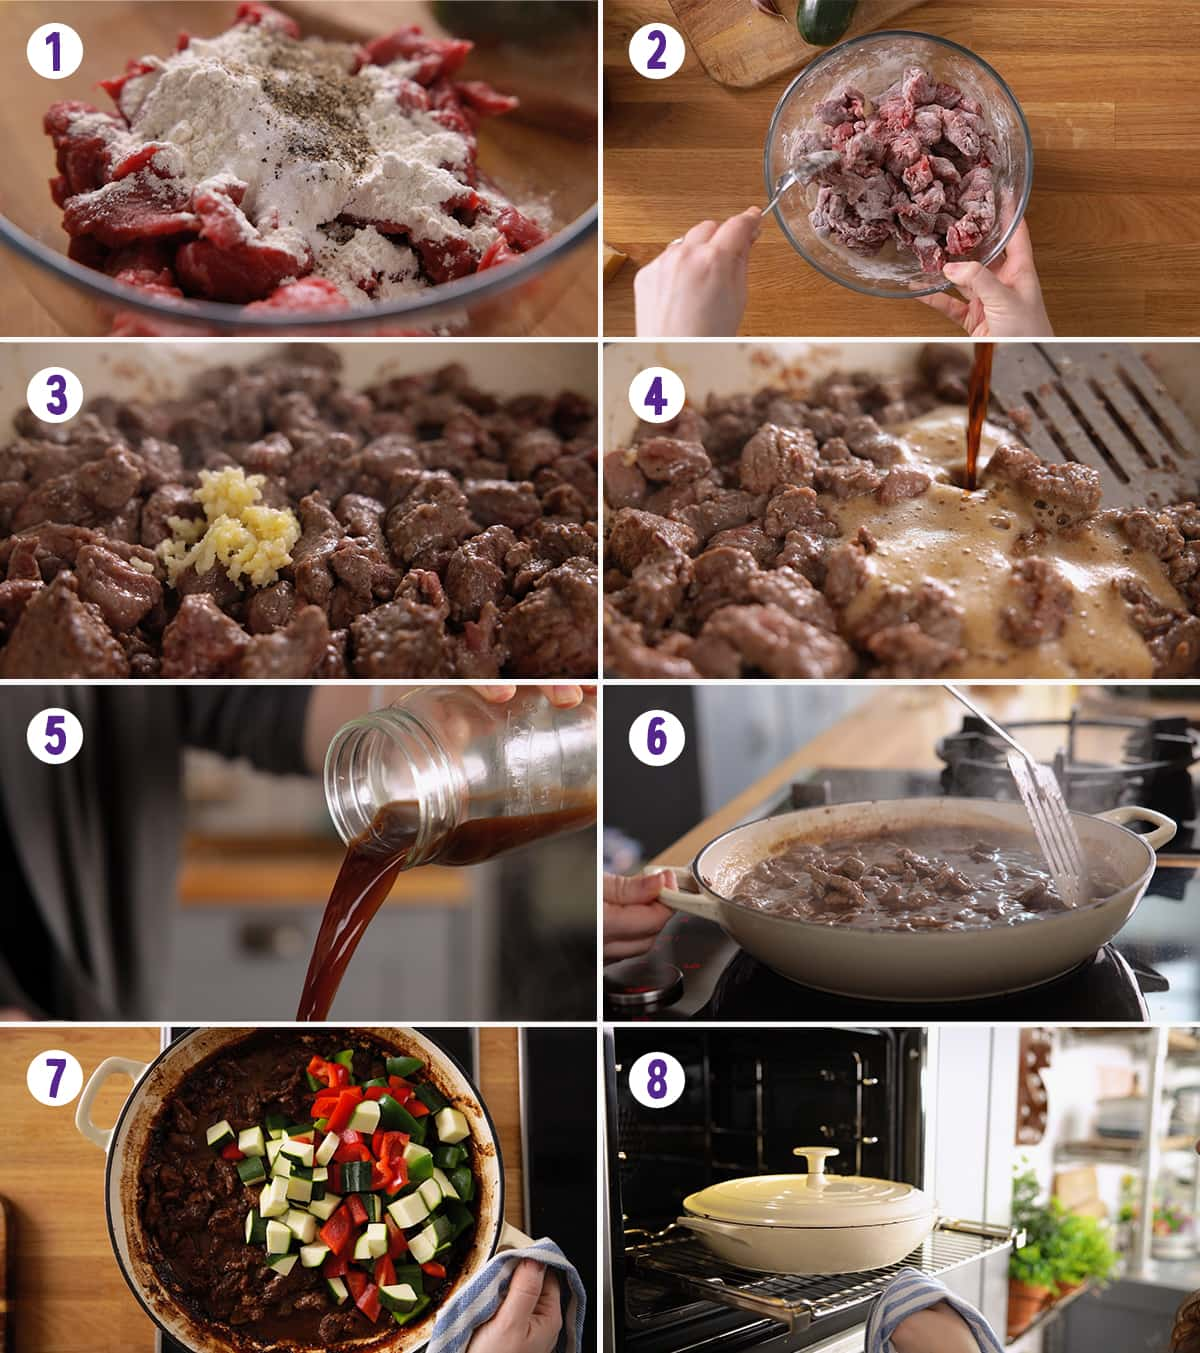 8 image collage showing how to make summer beef casserole